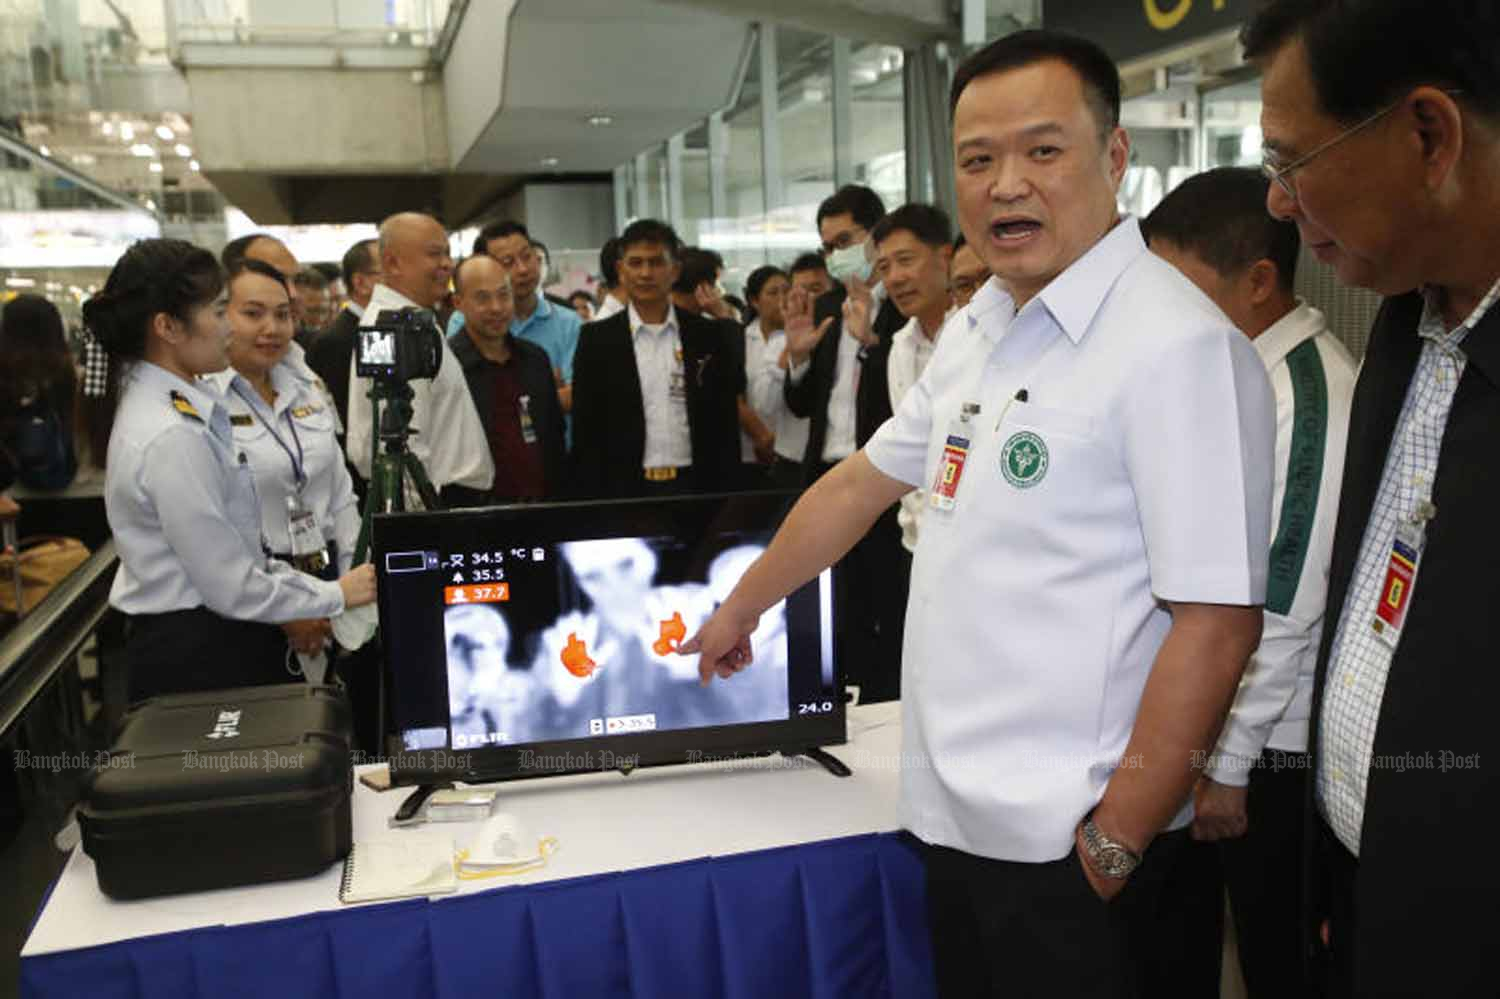 Public Health Minister Anutin Charnvirakul, second right, shows visitors from Wuhan receiving health screening at Suvarnabhumi airport in Samut Prakan province on Jan 5. He said on Monday that a Chinese woman found infected with a new strain of coronavirus was in quarantine and being treated in Nonthaburi province. (Photo by Pornprom Satrabhaya)